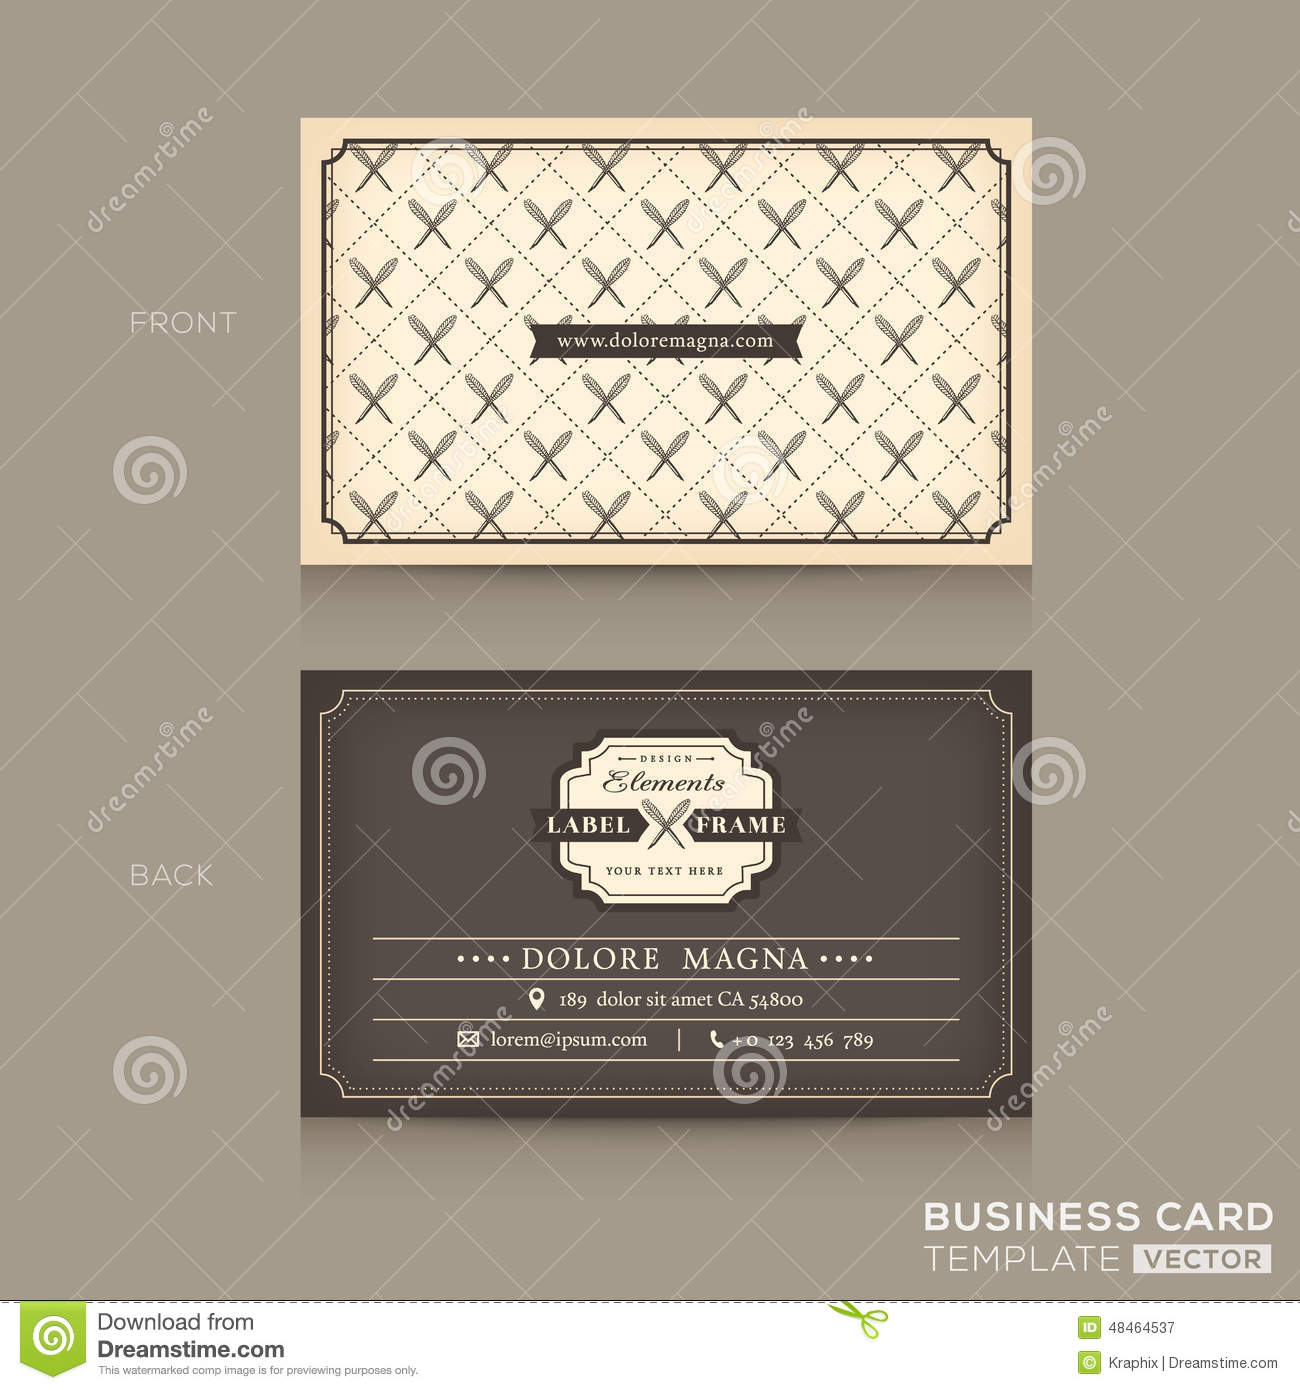 Classic business card design template stock vector illustration of classic business card design template stock vector illustration of restaurant illustration 48464537 reheart Choice Image